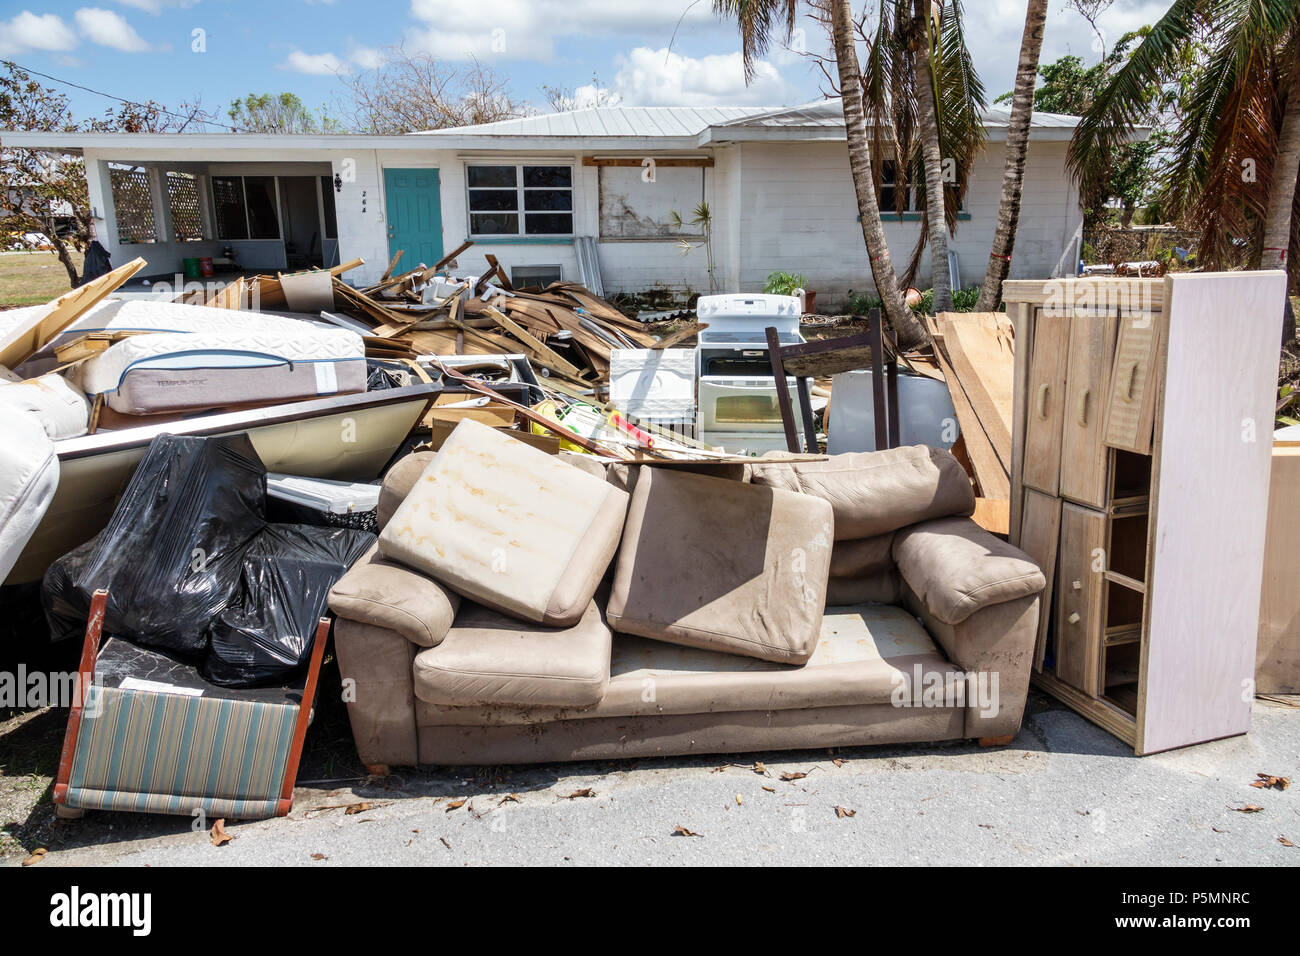 Everglades City Florida after Hurricane Irma houses homes residences front yard storm disaster recovery cleanup flood surge damage destruction afterma - Stock Image